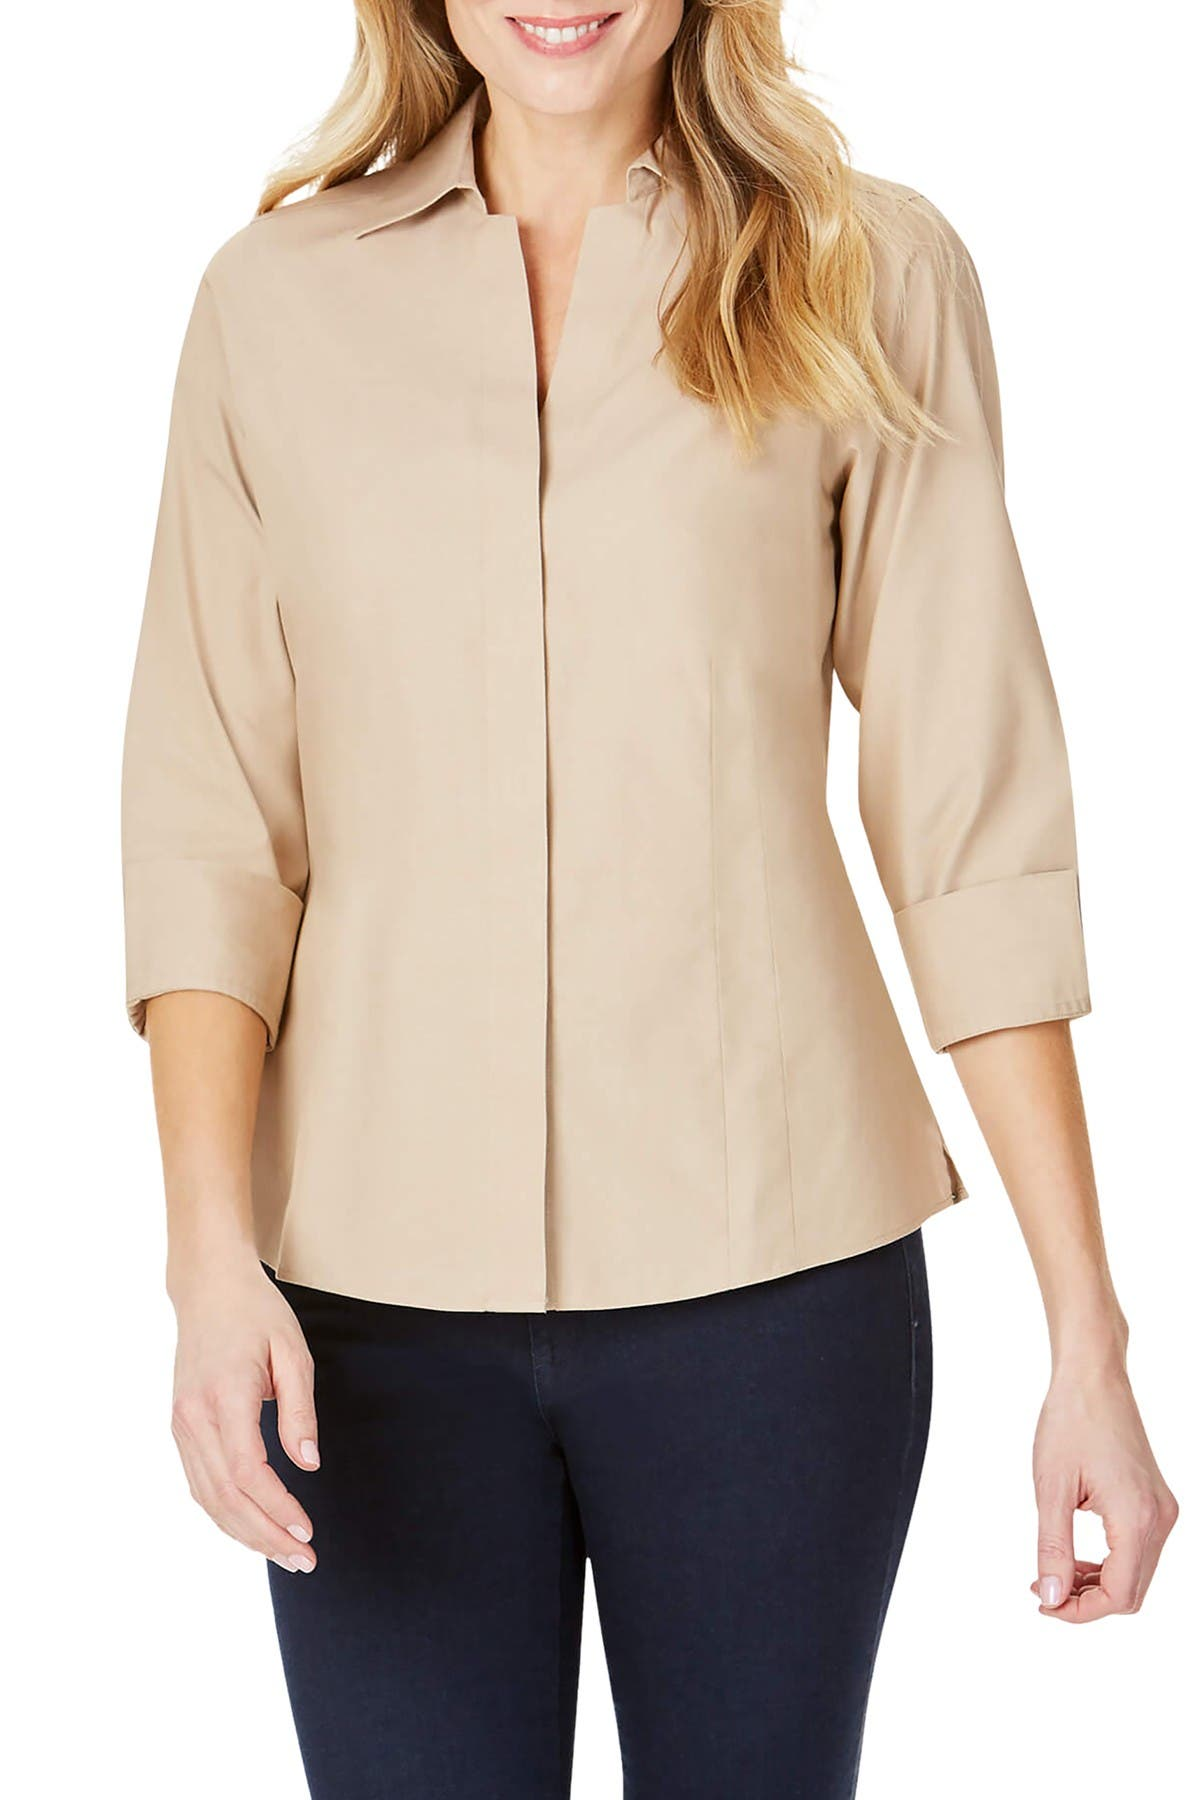 Image of FOXCROFT Taylor Fitted Collar Blouse